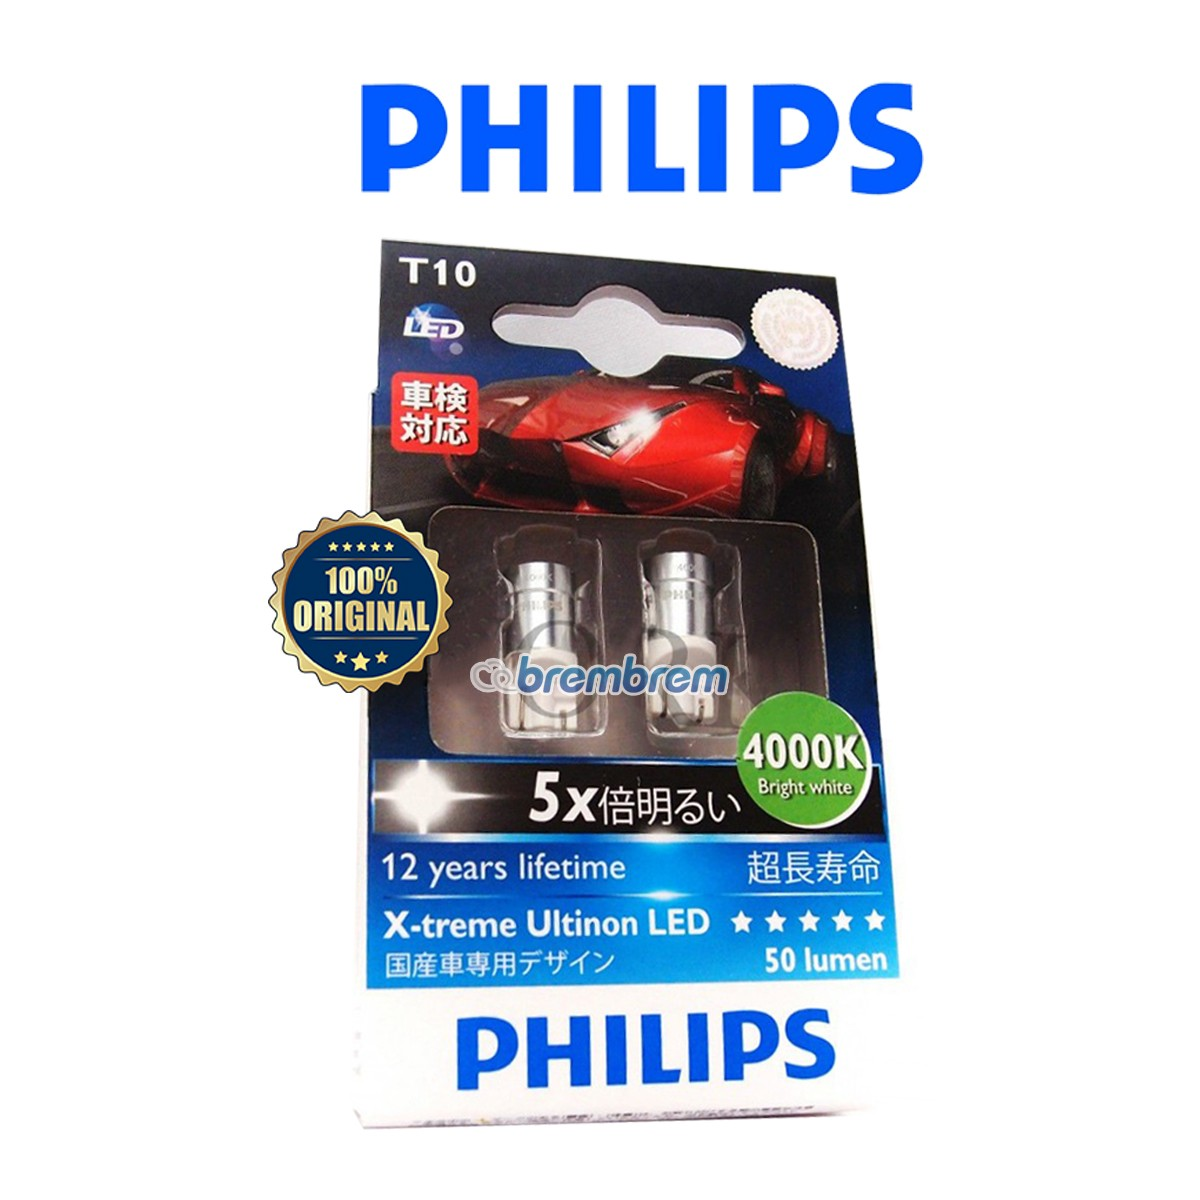 PHILIPS XTREME ULTINON T10 (4000K) - LAMPU LED SENJA